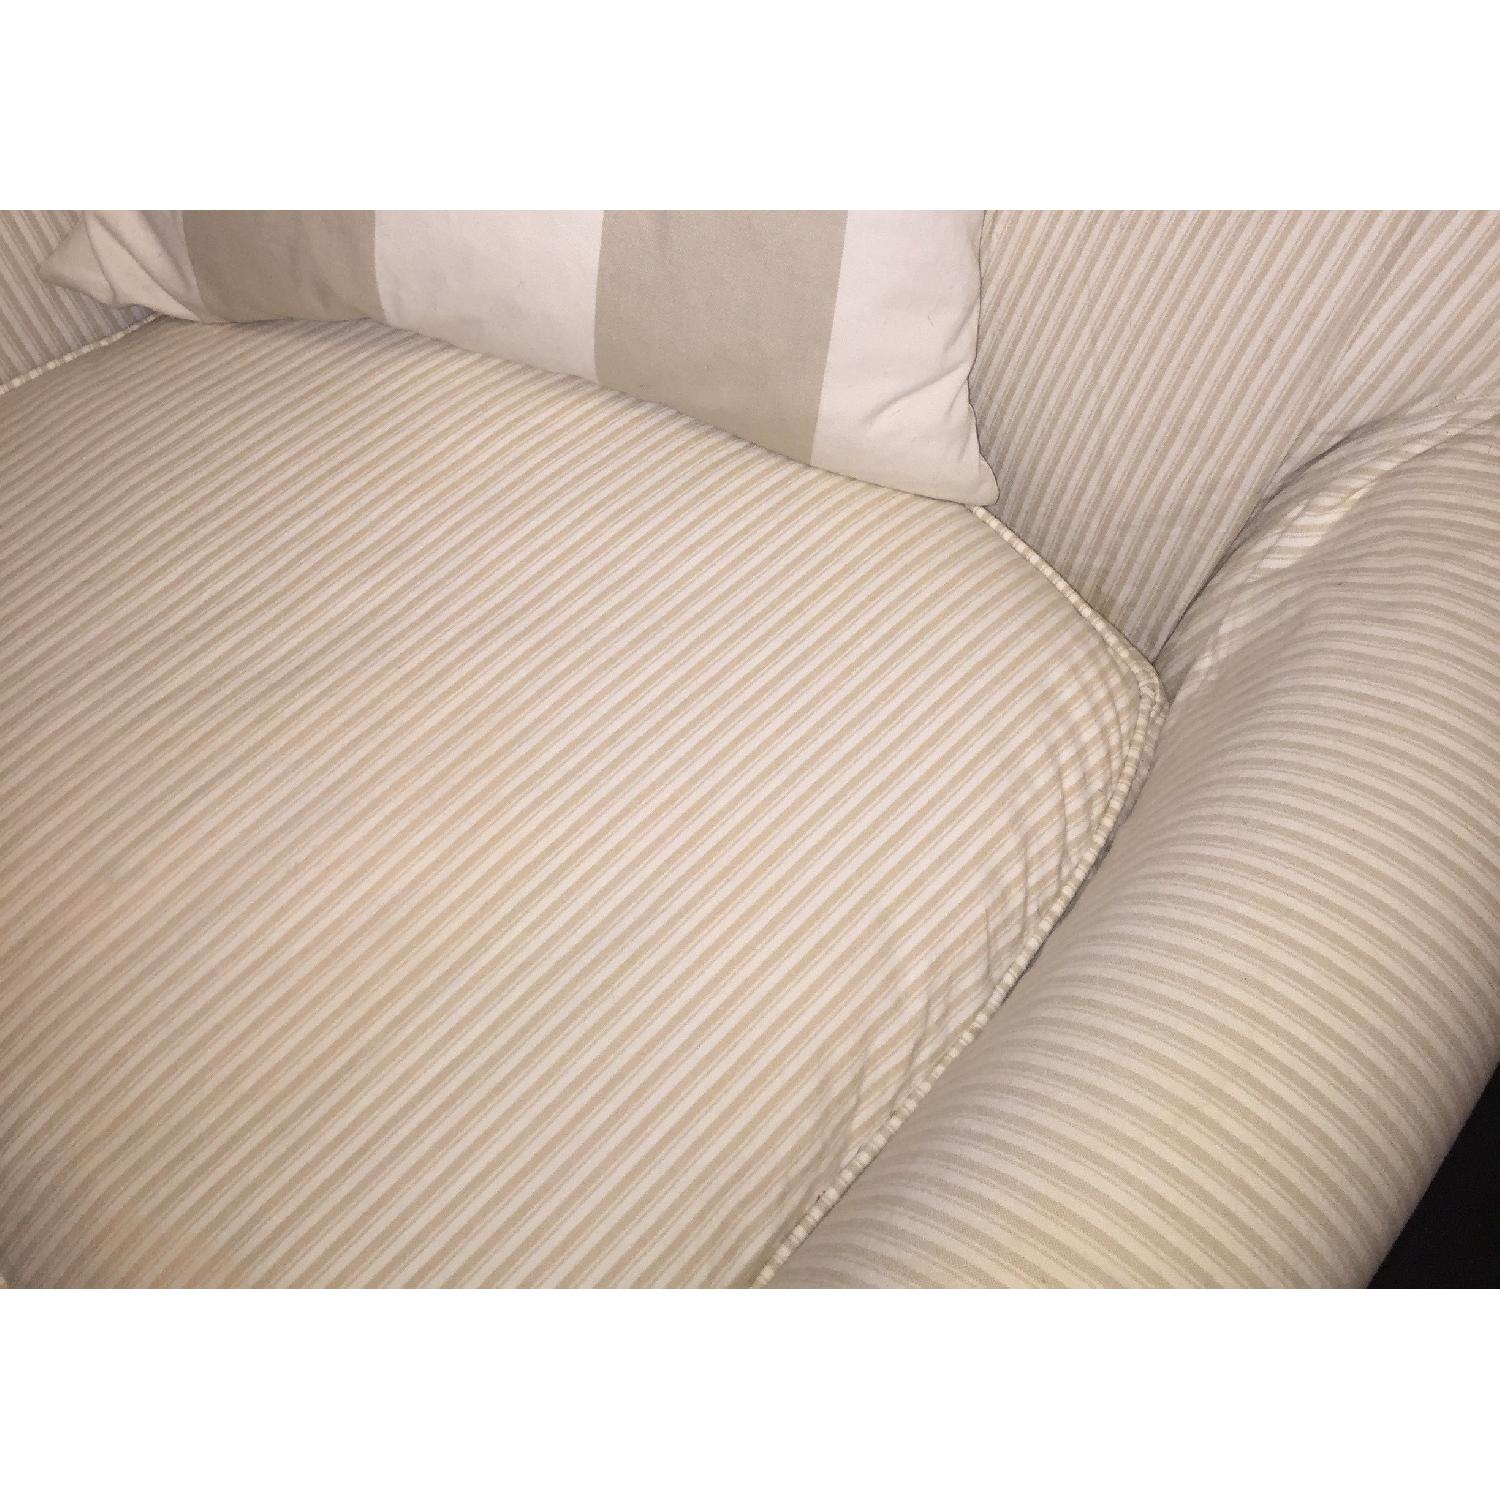 Crate & Barrel Avery Swivel Glider with w/ Pinstripe Slipcover-8